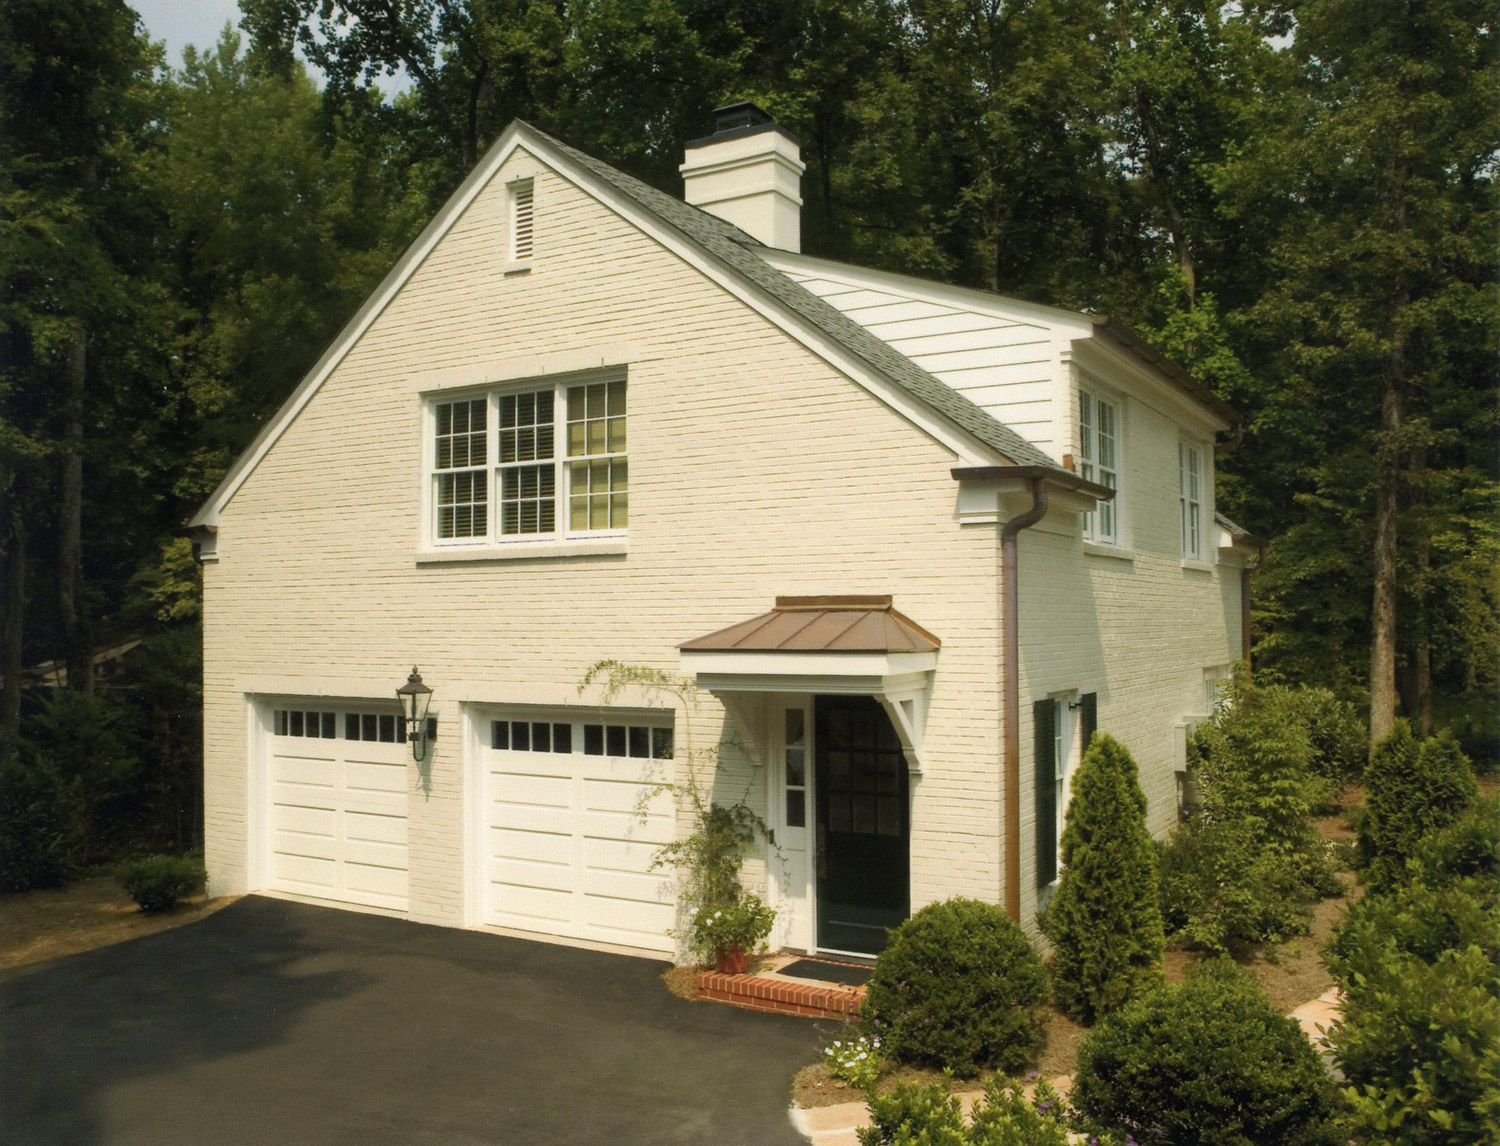 family-guest-house-greensboro-nc-frank-cheney-architect-1-web.jpg